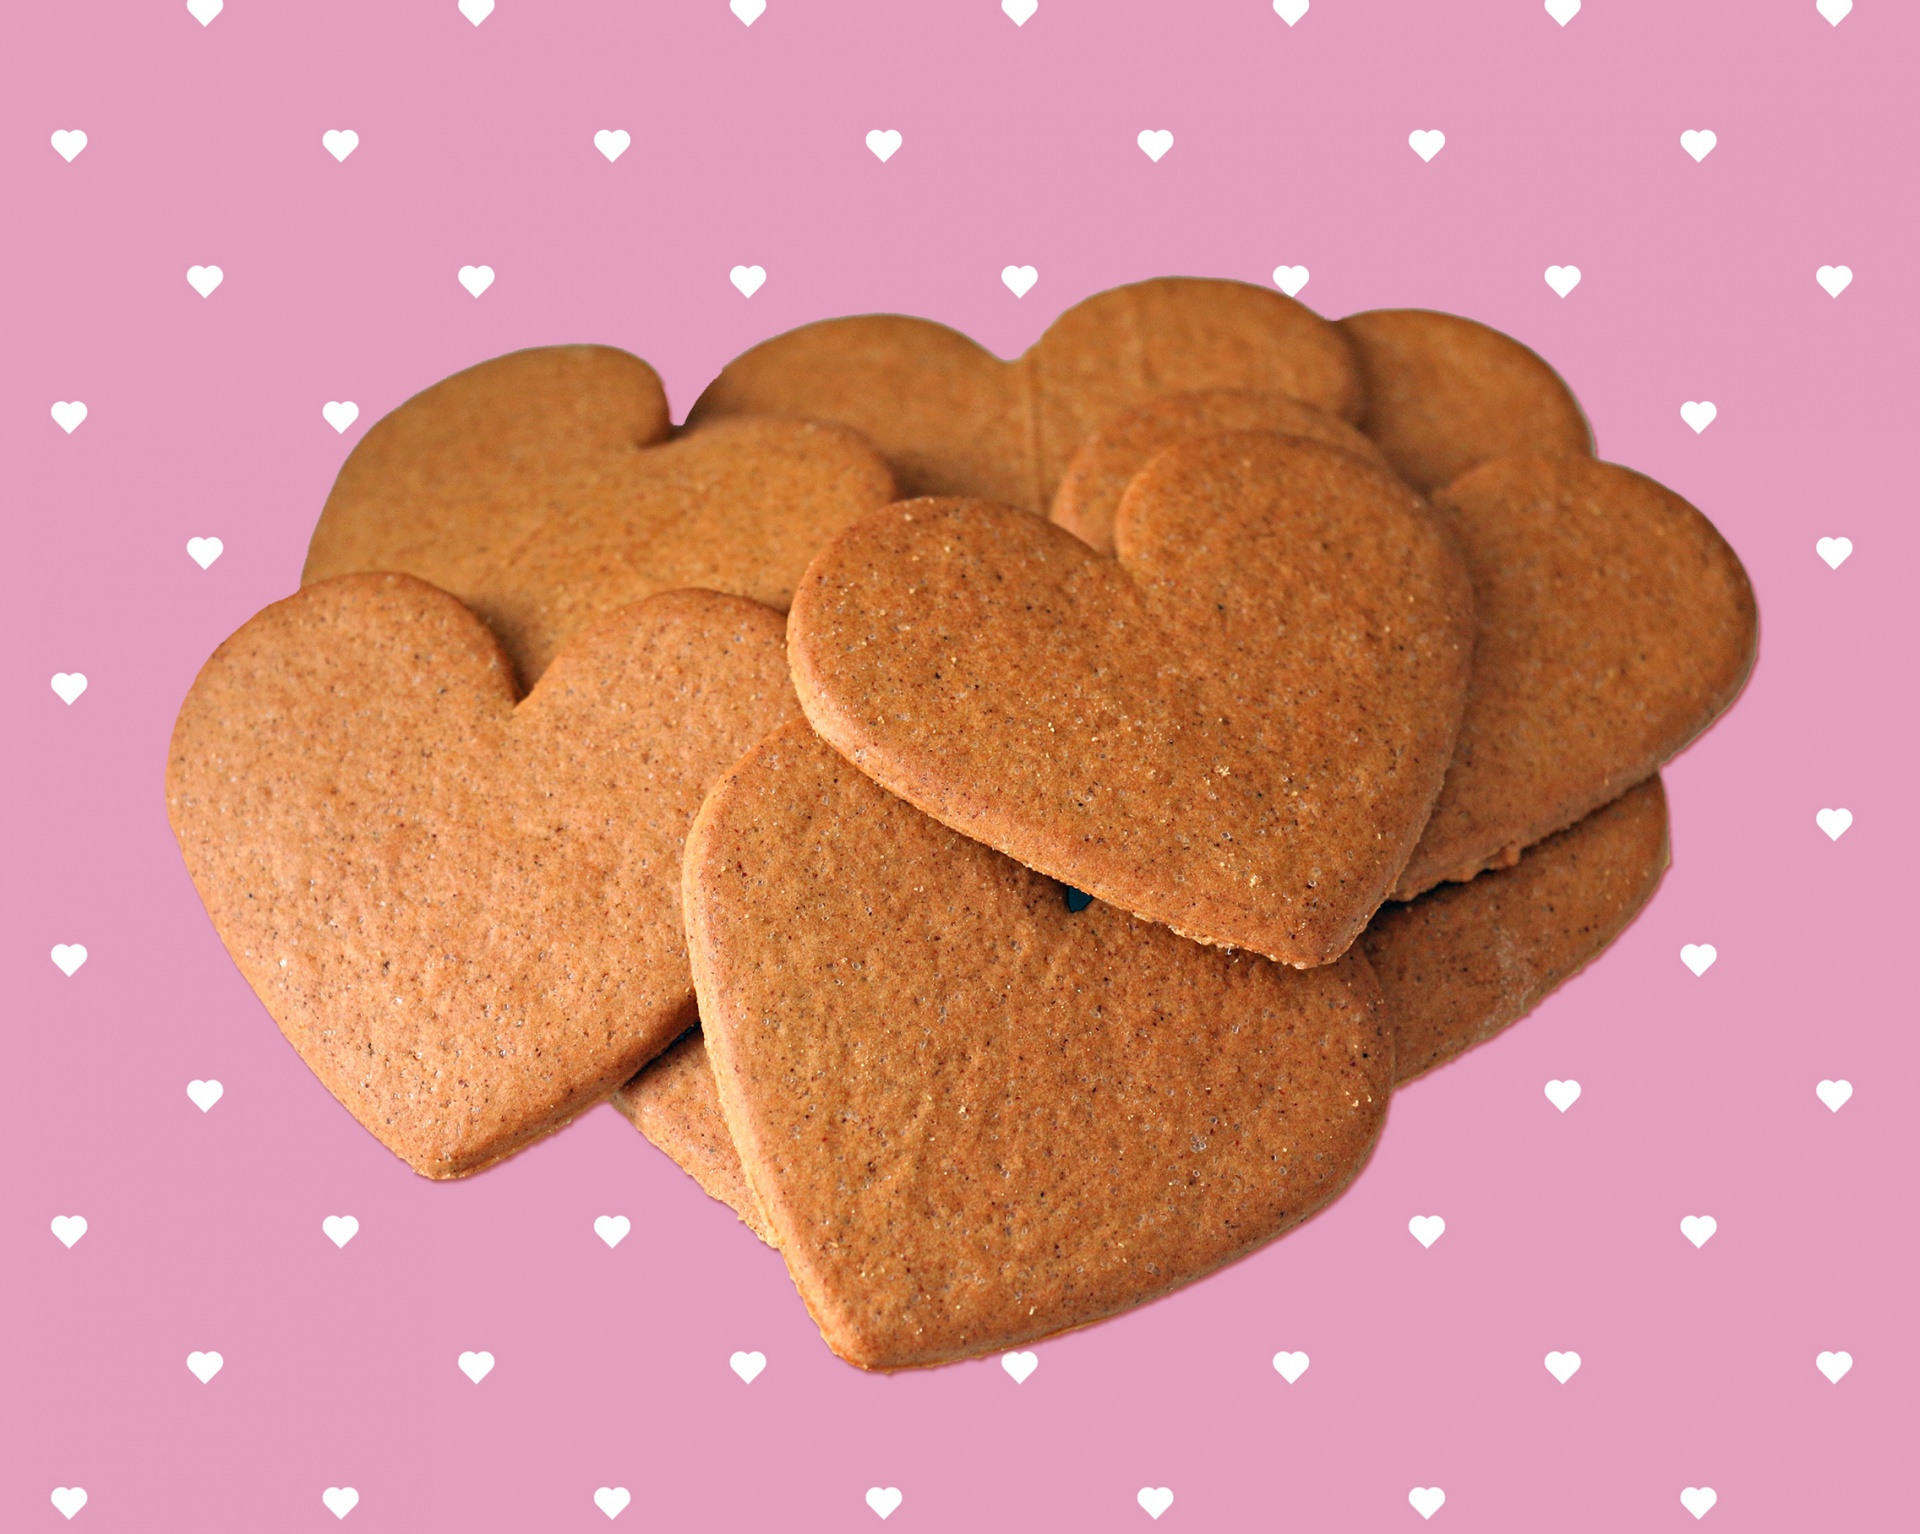 cookies-biscuits-heart-shaped.jpg